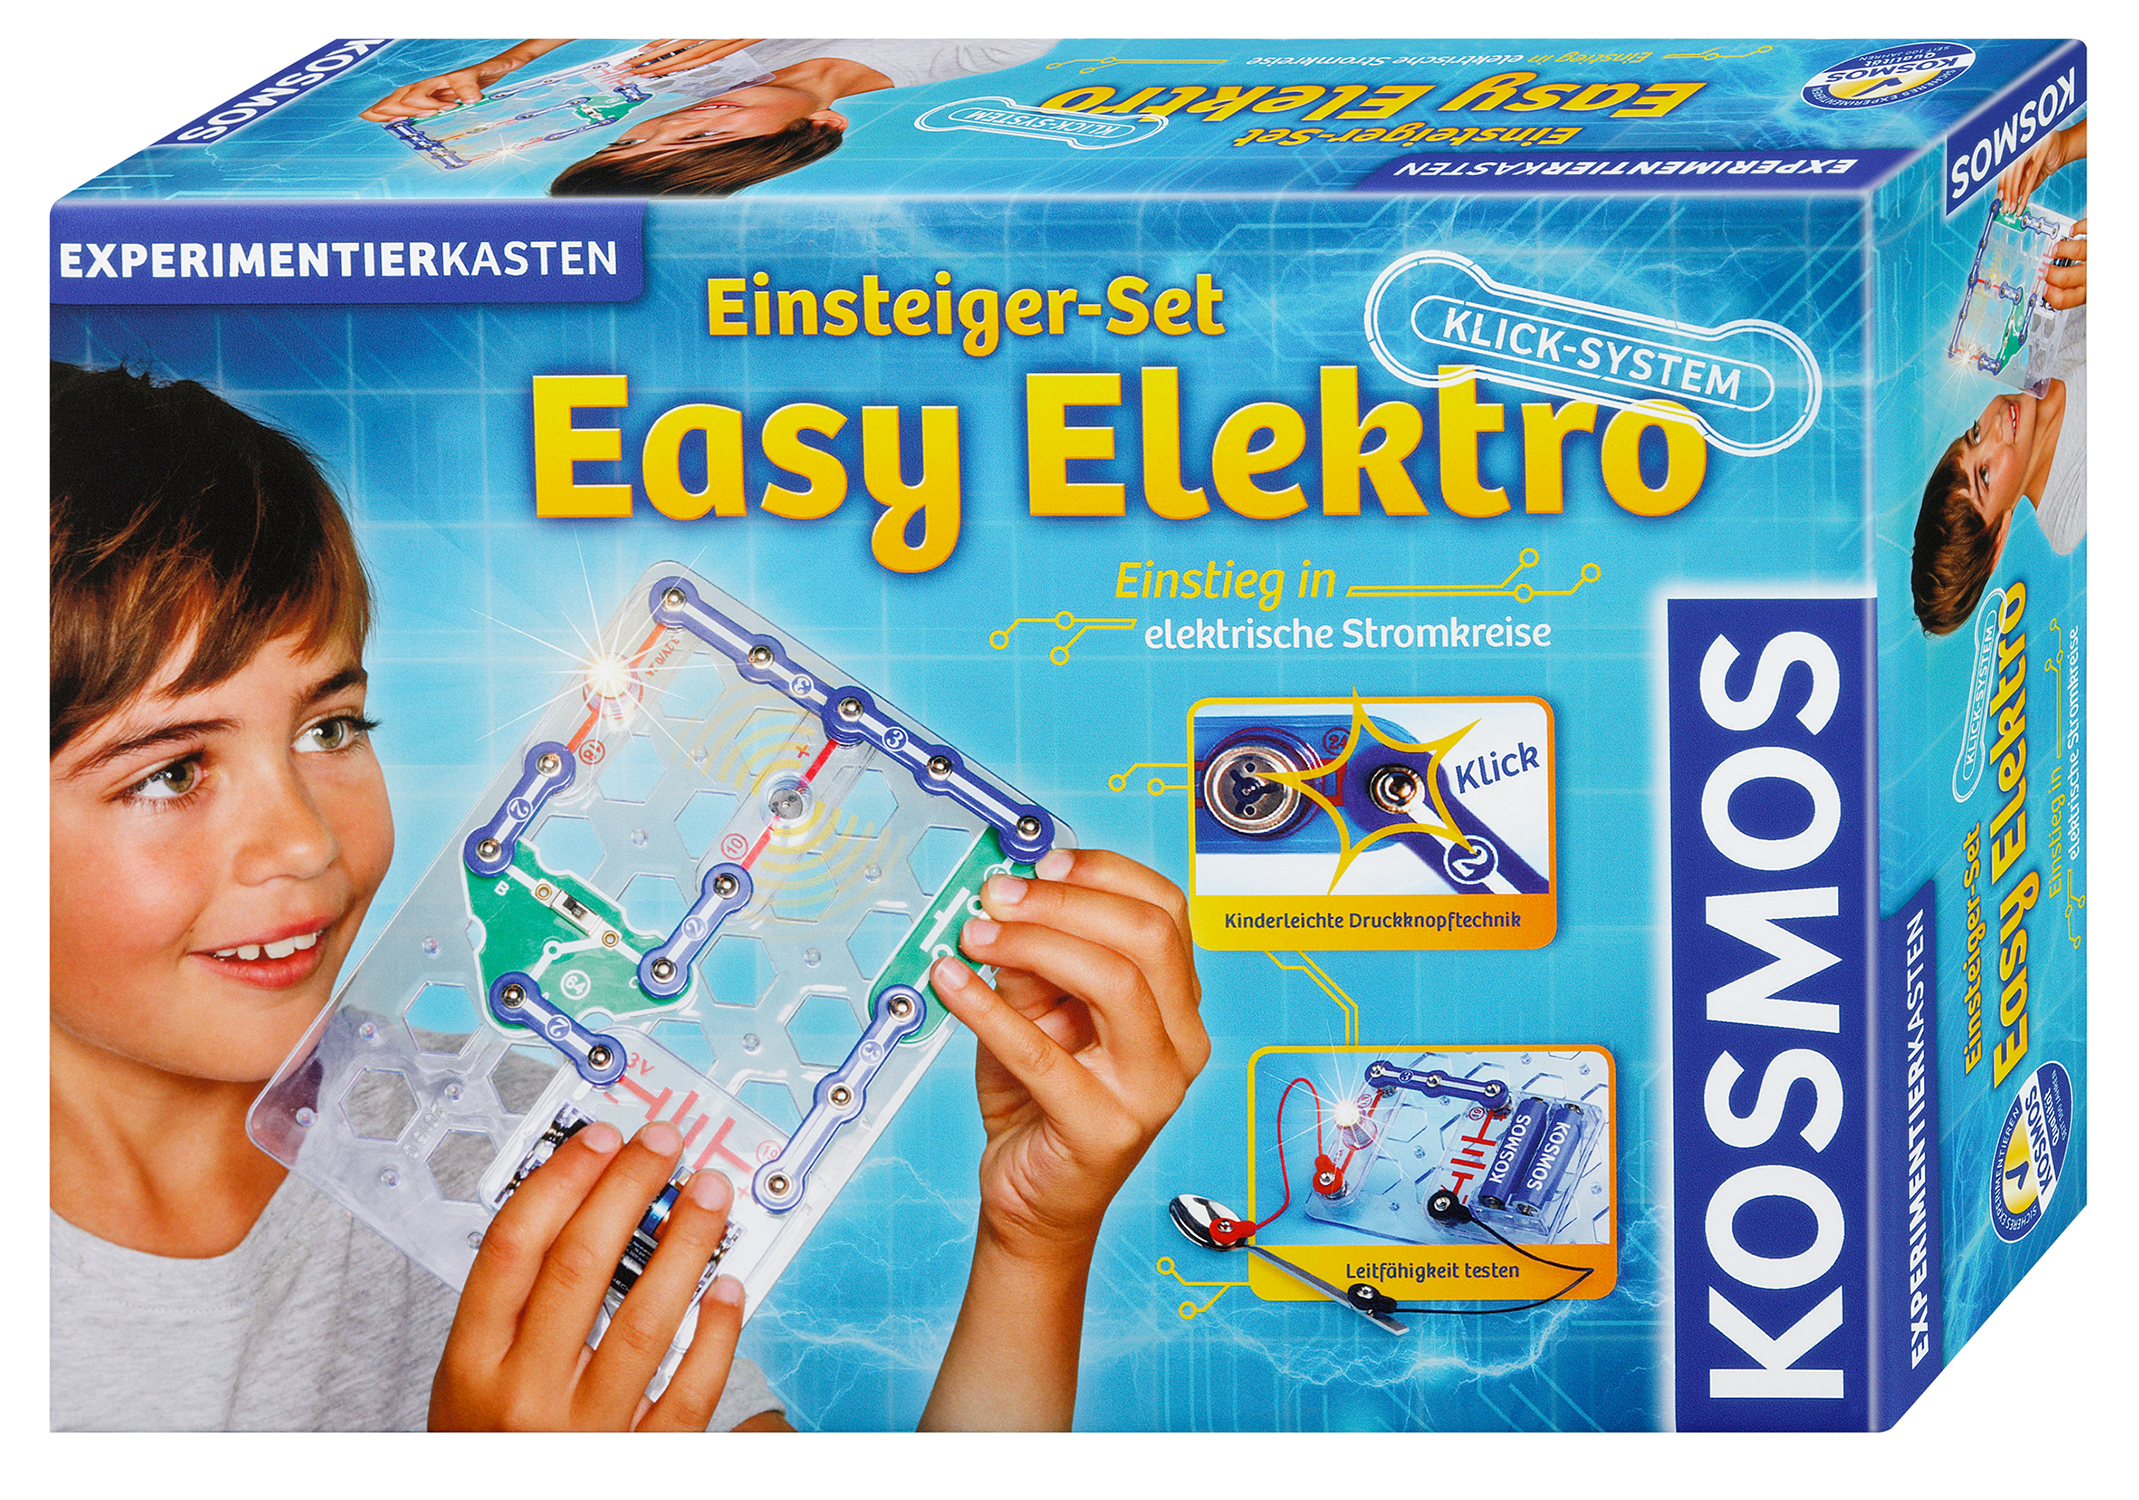 Einsteiger-Set Easy Elektro | Physik & Elektronik ...